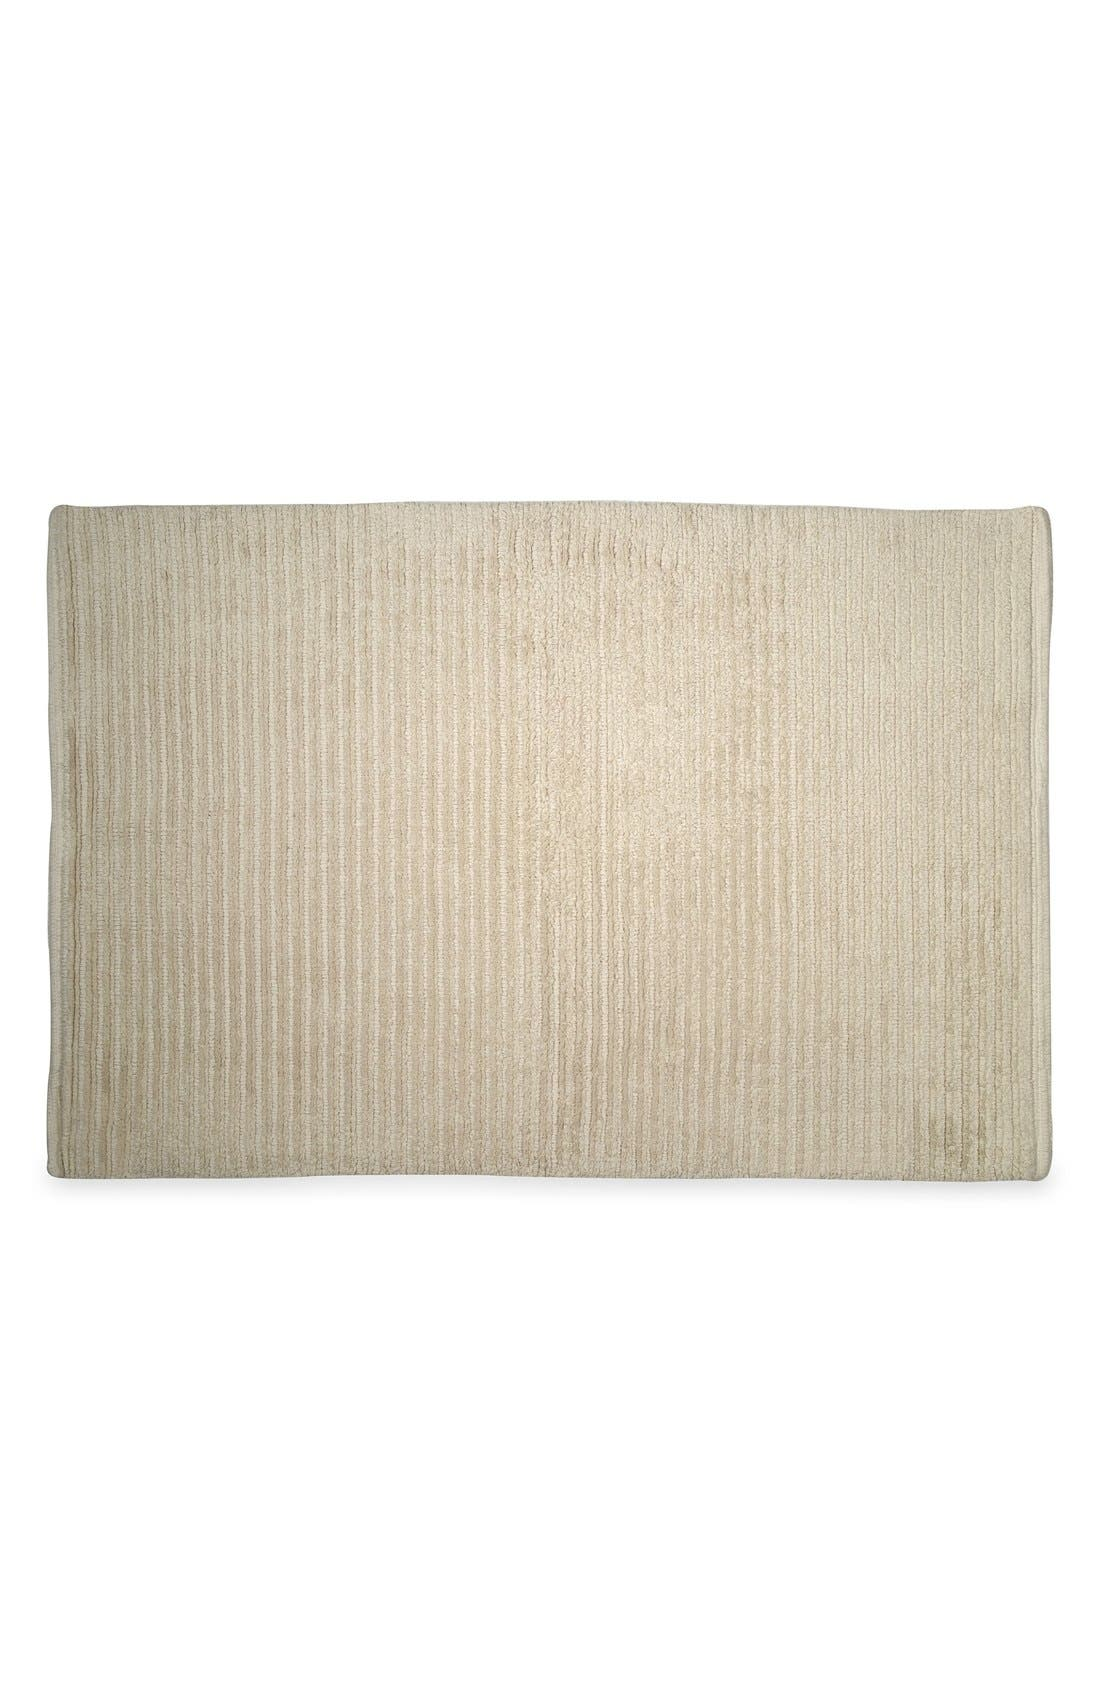 Main Image - DKNY Mercer Bath Rug